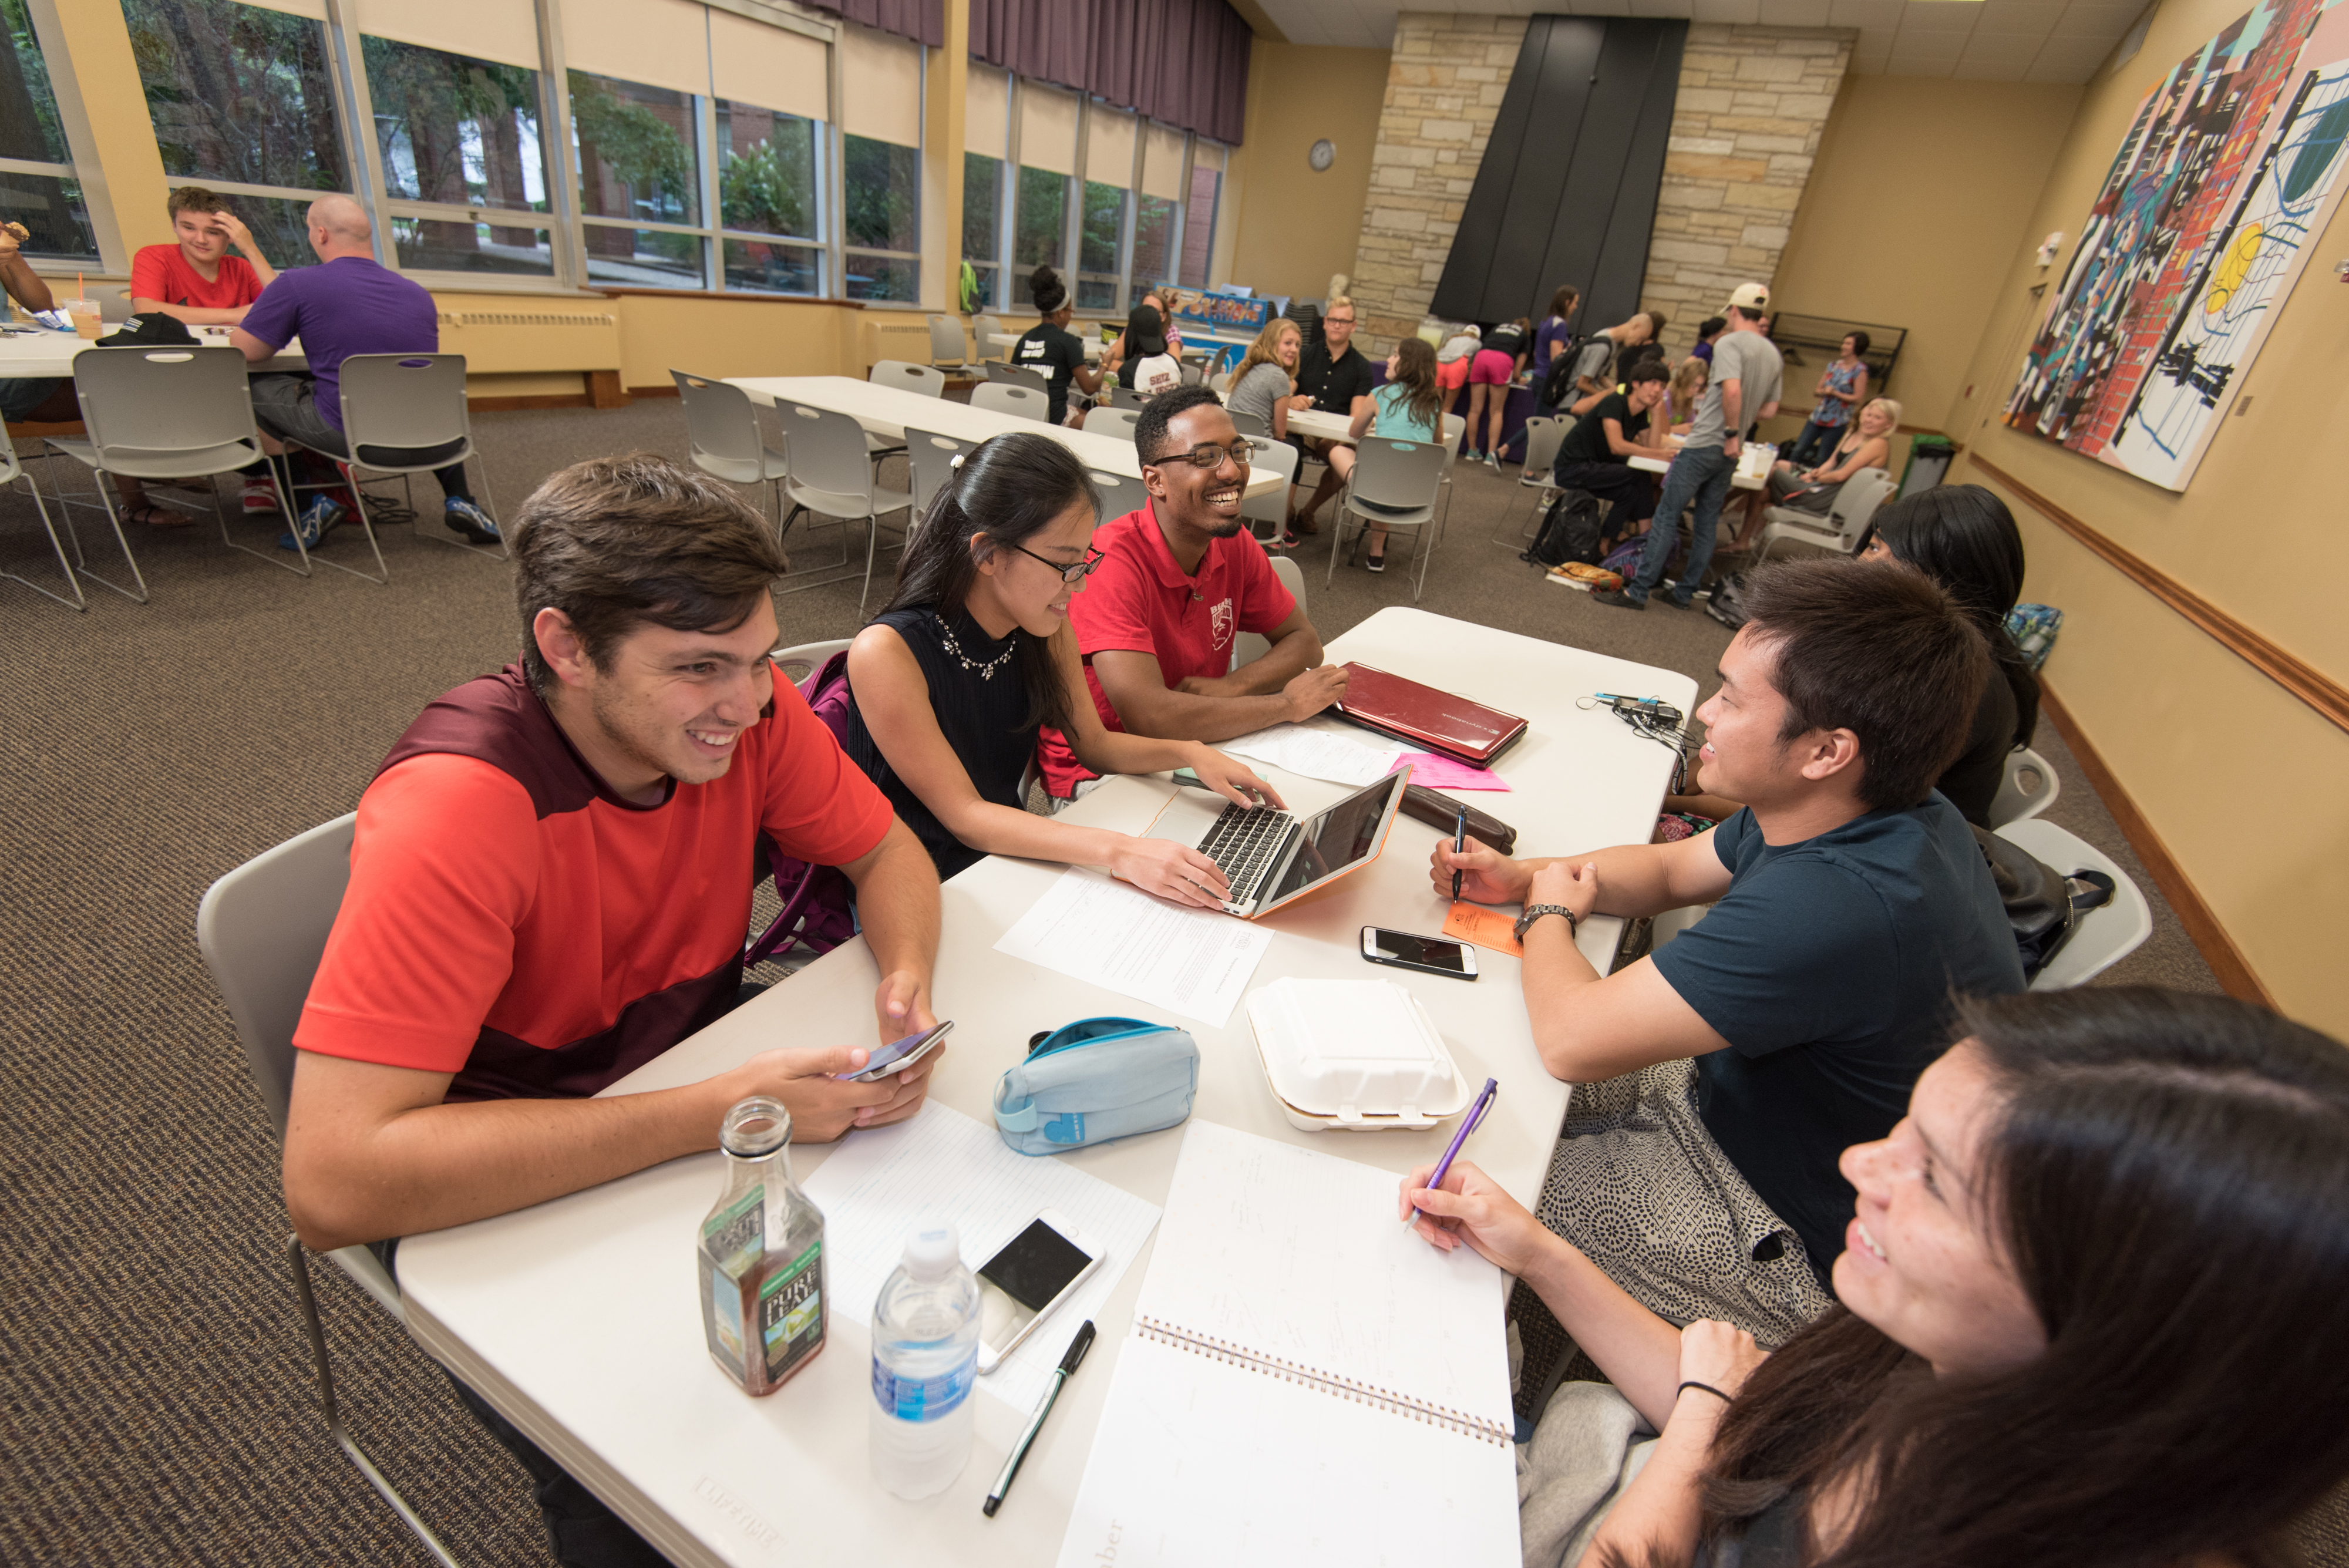 University of Mount Union international students meeting